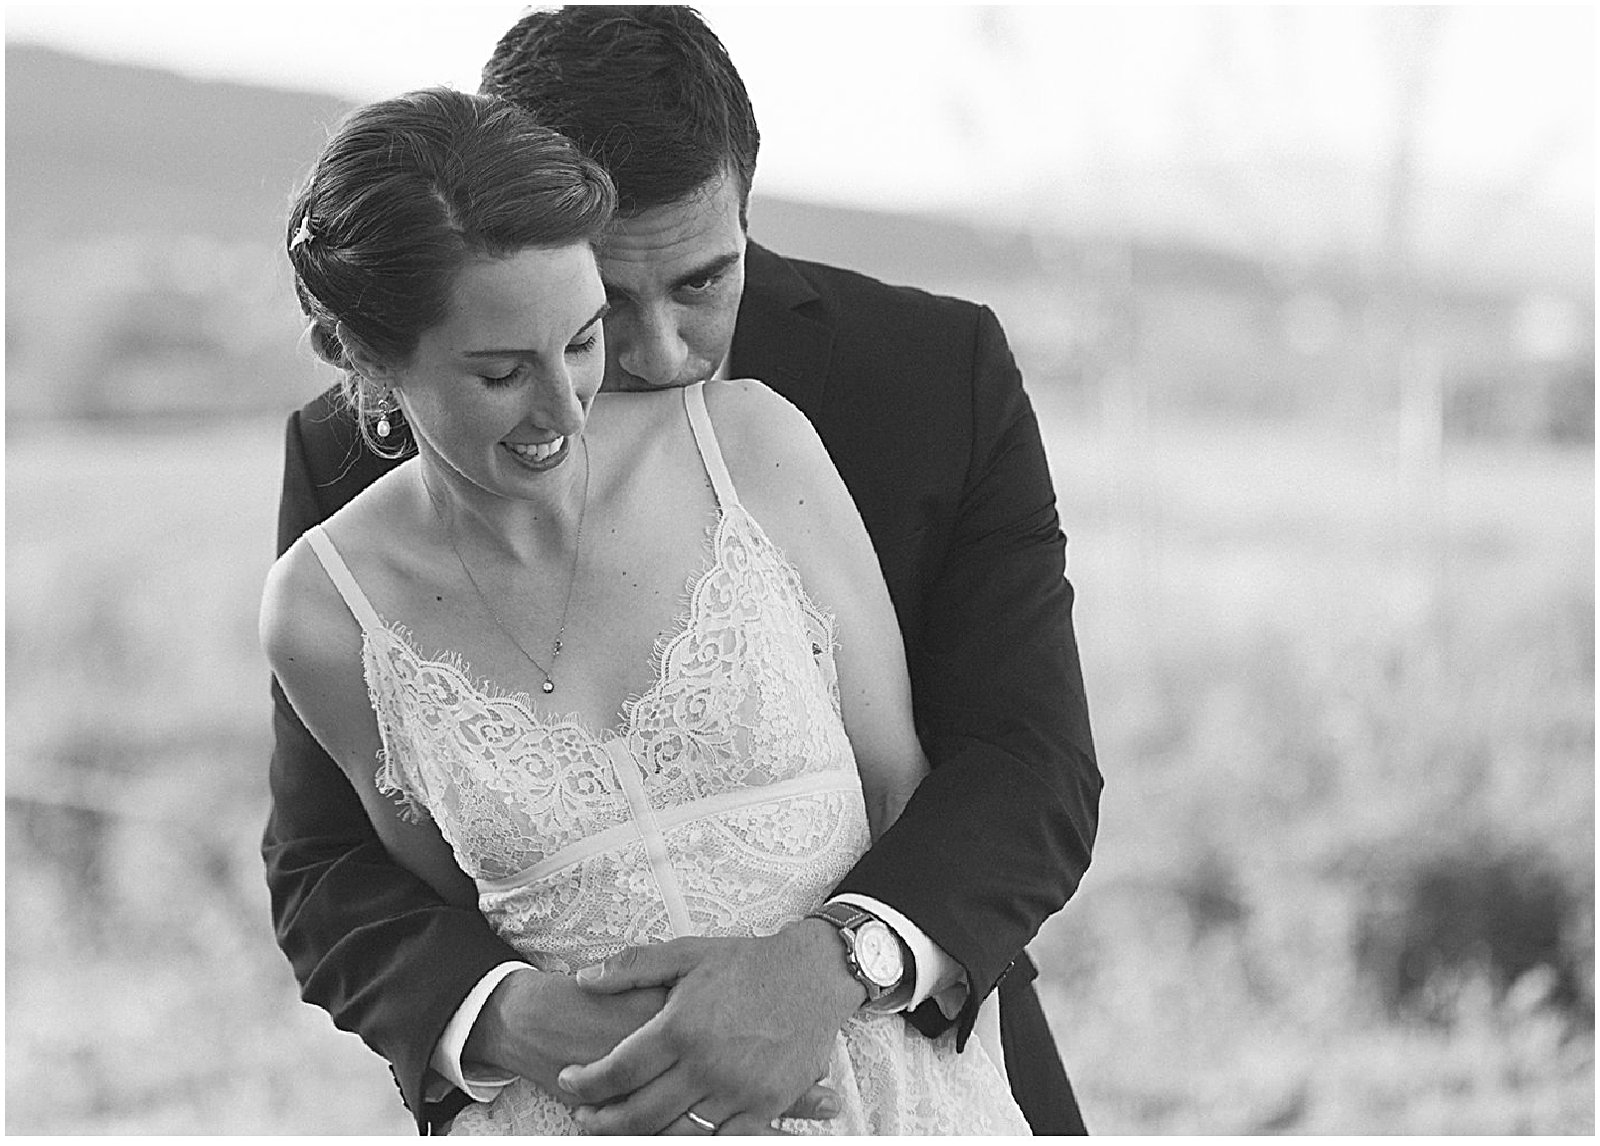 classic vintage portrait of wedding couple in Alsace France by destination wedding photographer Helena Woods